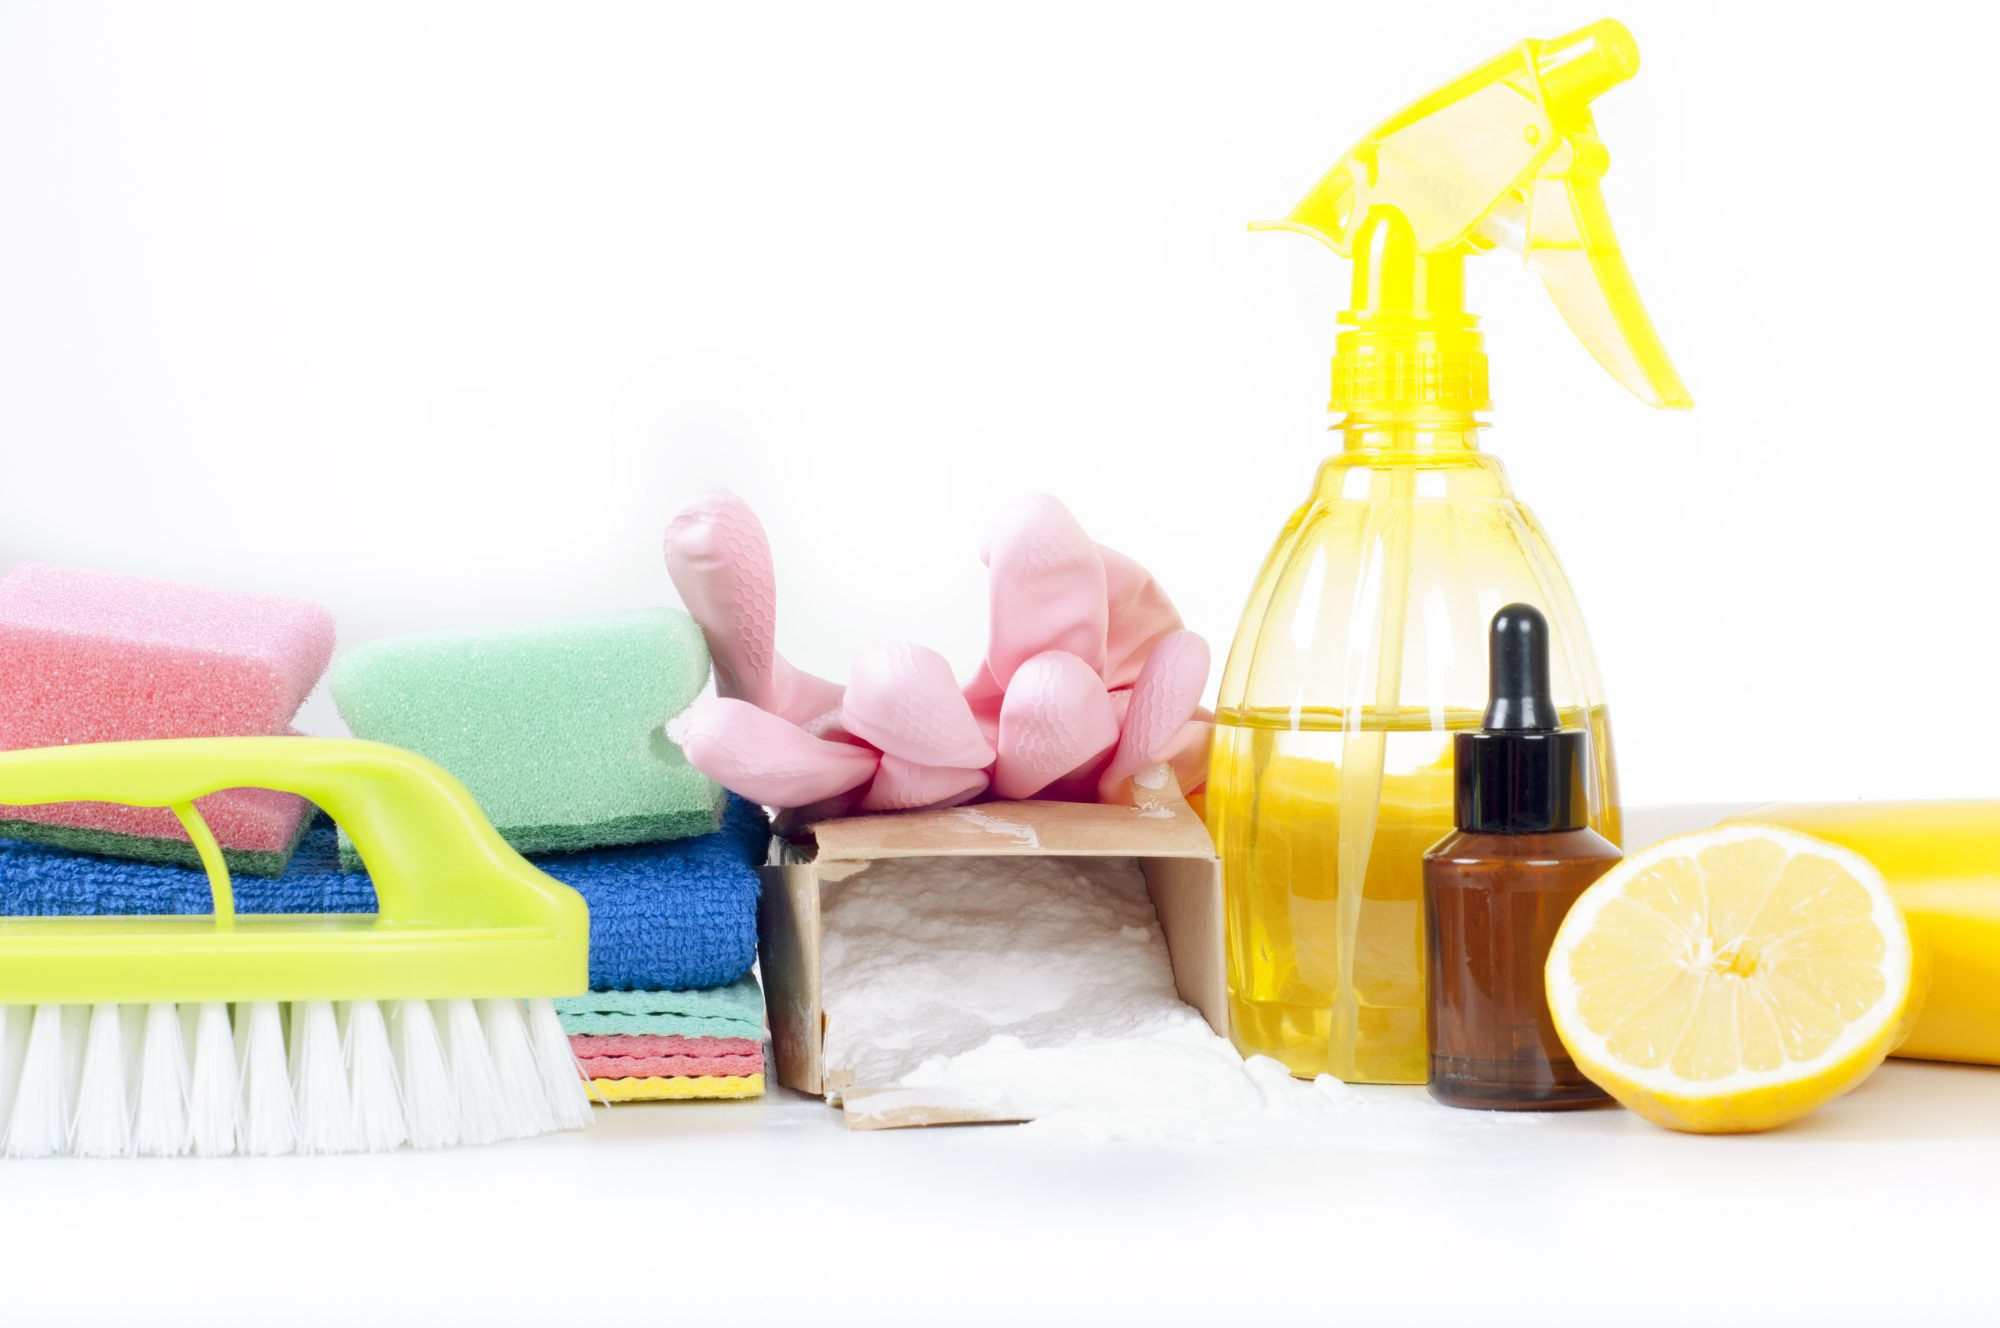 eco-friendly cleaning products on table